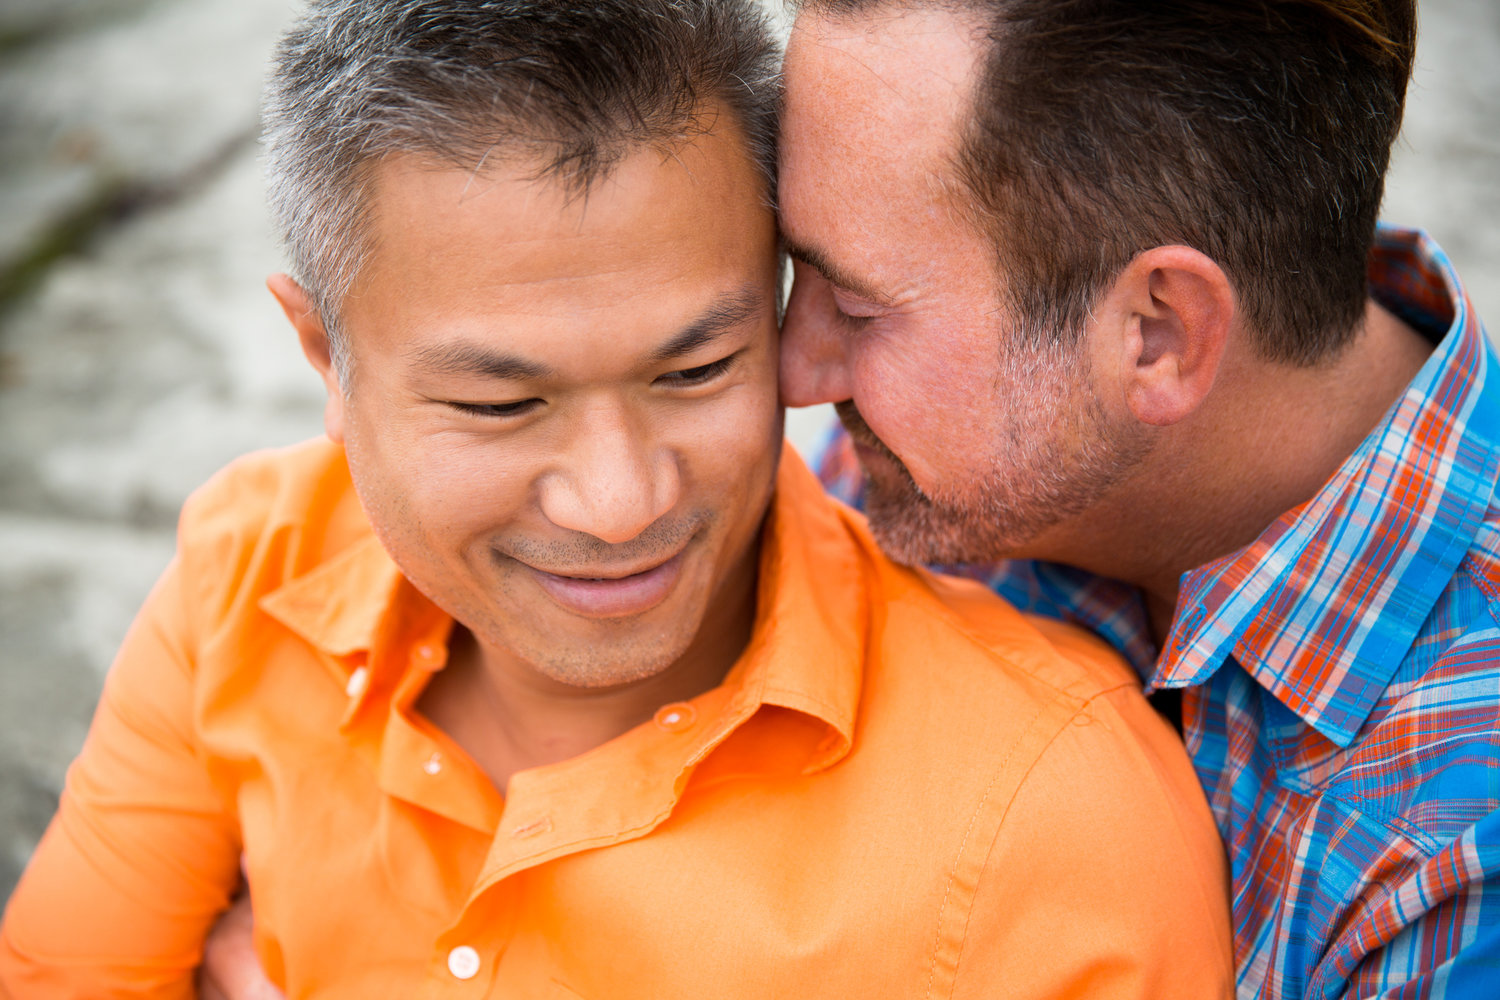 Queer Couples Counseling & Sex Therapy - Napa Valley Couples Therapy Center celebrates & respects diversity. All of our clinicians are LGBTQ+ sensitive and/or identify as such. We also support kink, poly, and other non-traditional relationship configurations. Our therapists are also trauma informed in their work.